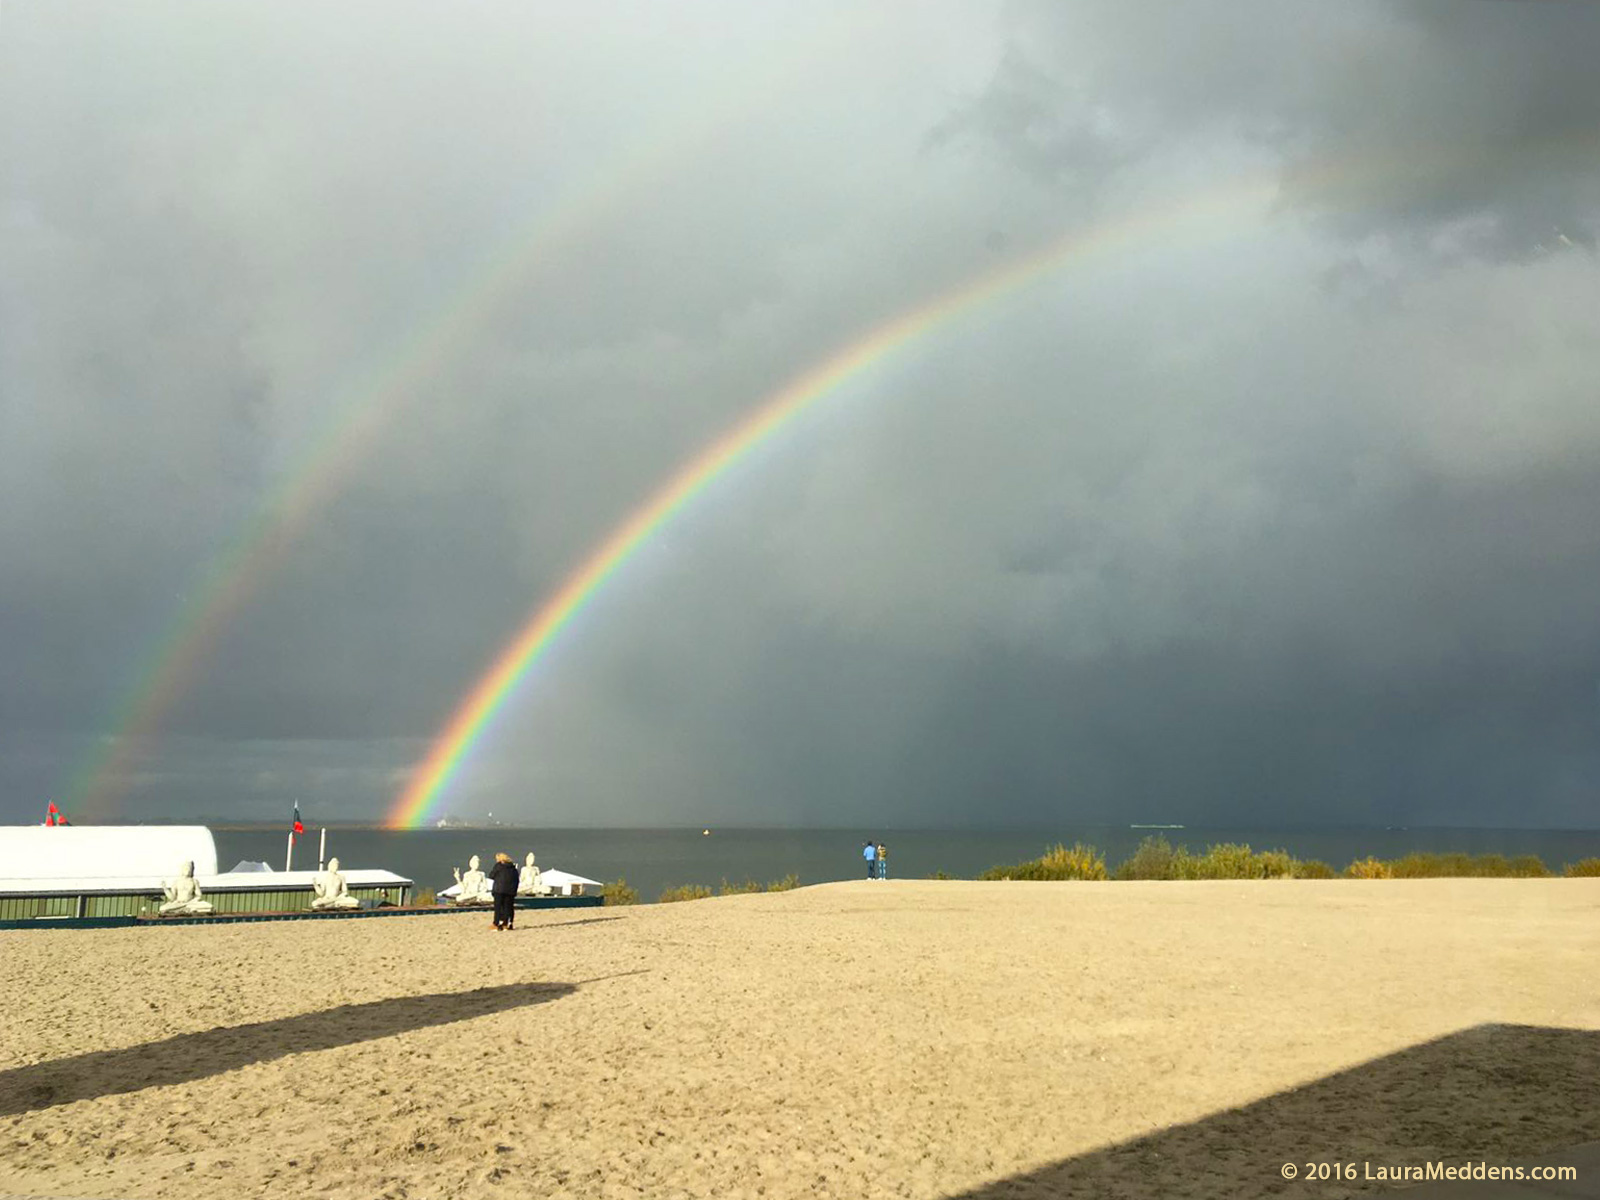 photo shows two parallel rainbows in the sky over Blijburg Beach in Ijburg, with t